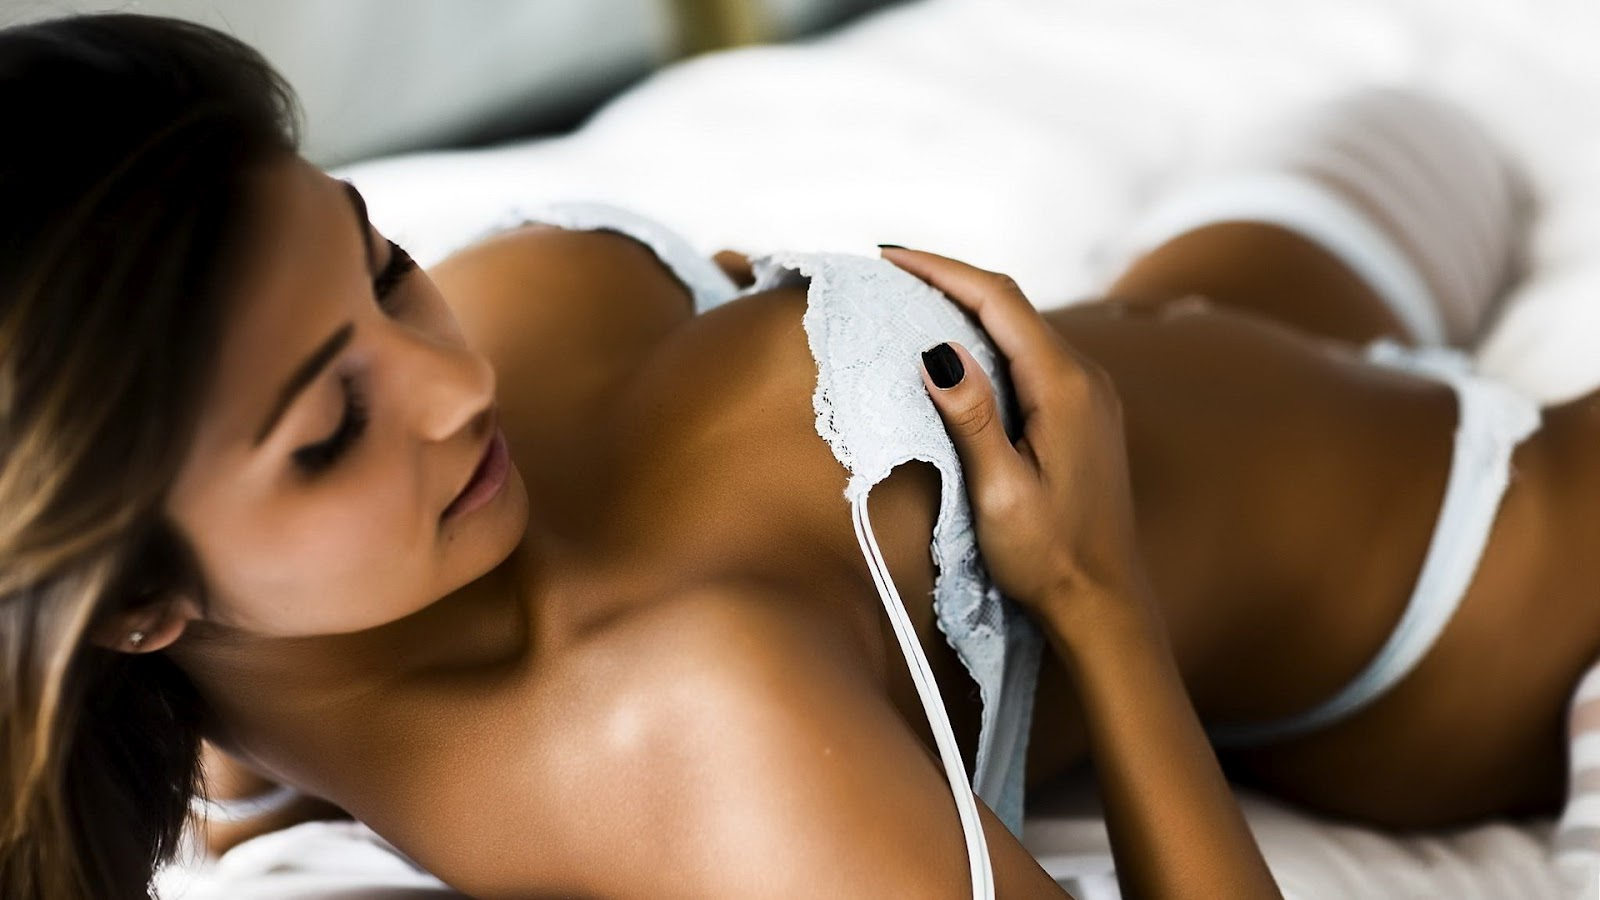 HD Wallpapers of Hot Girls - A | HD Wallpapers